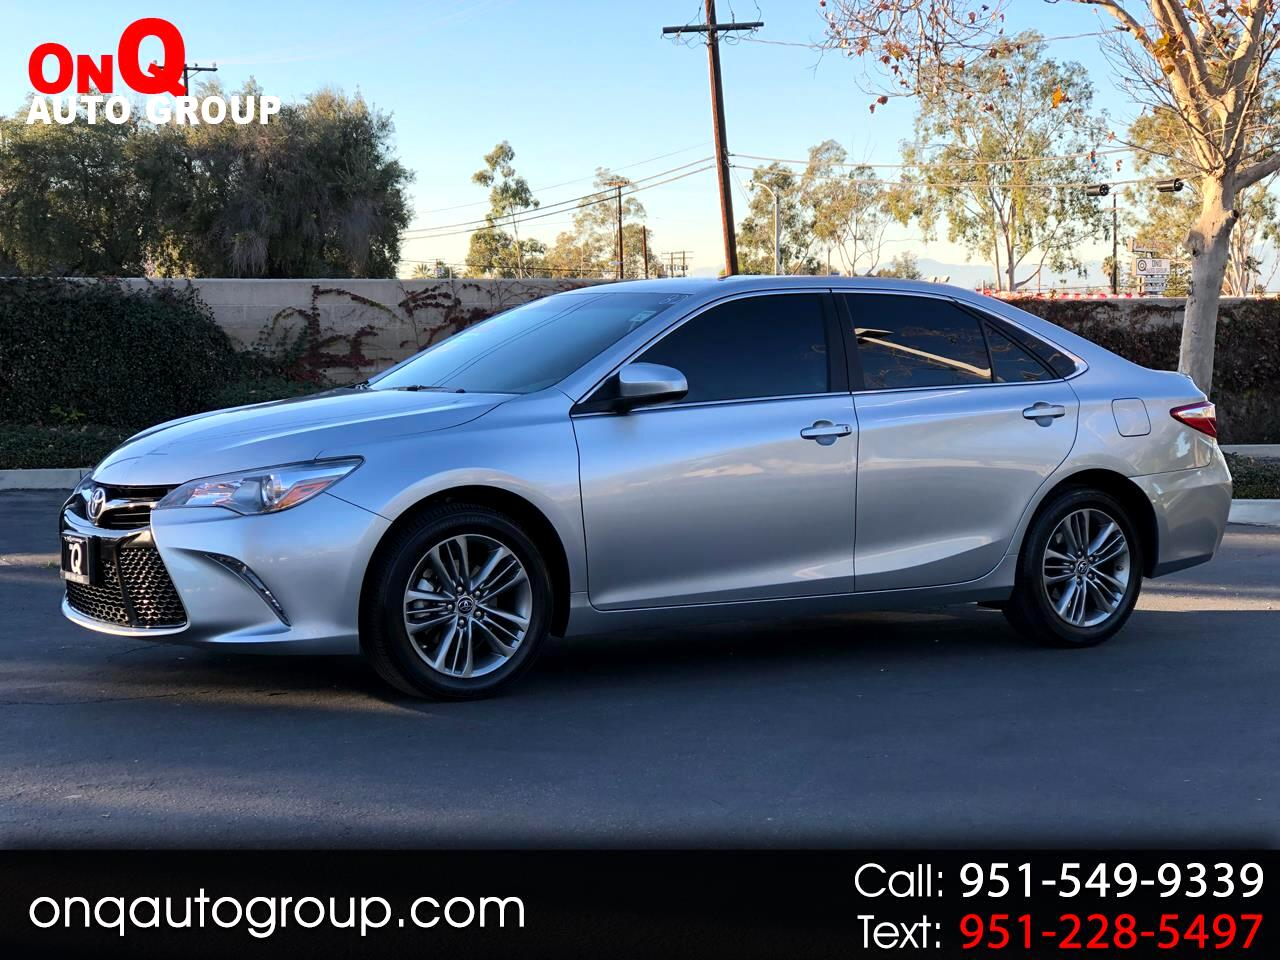 2015 Toyota Camry ONLY 11K MILES!!!!